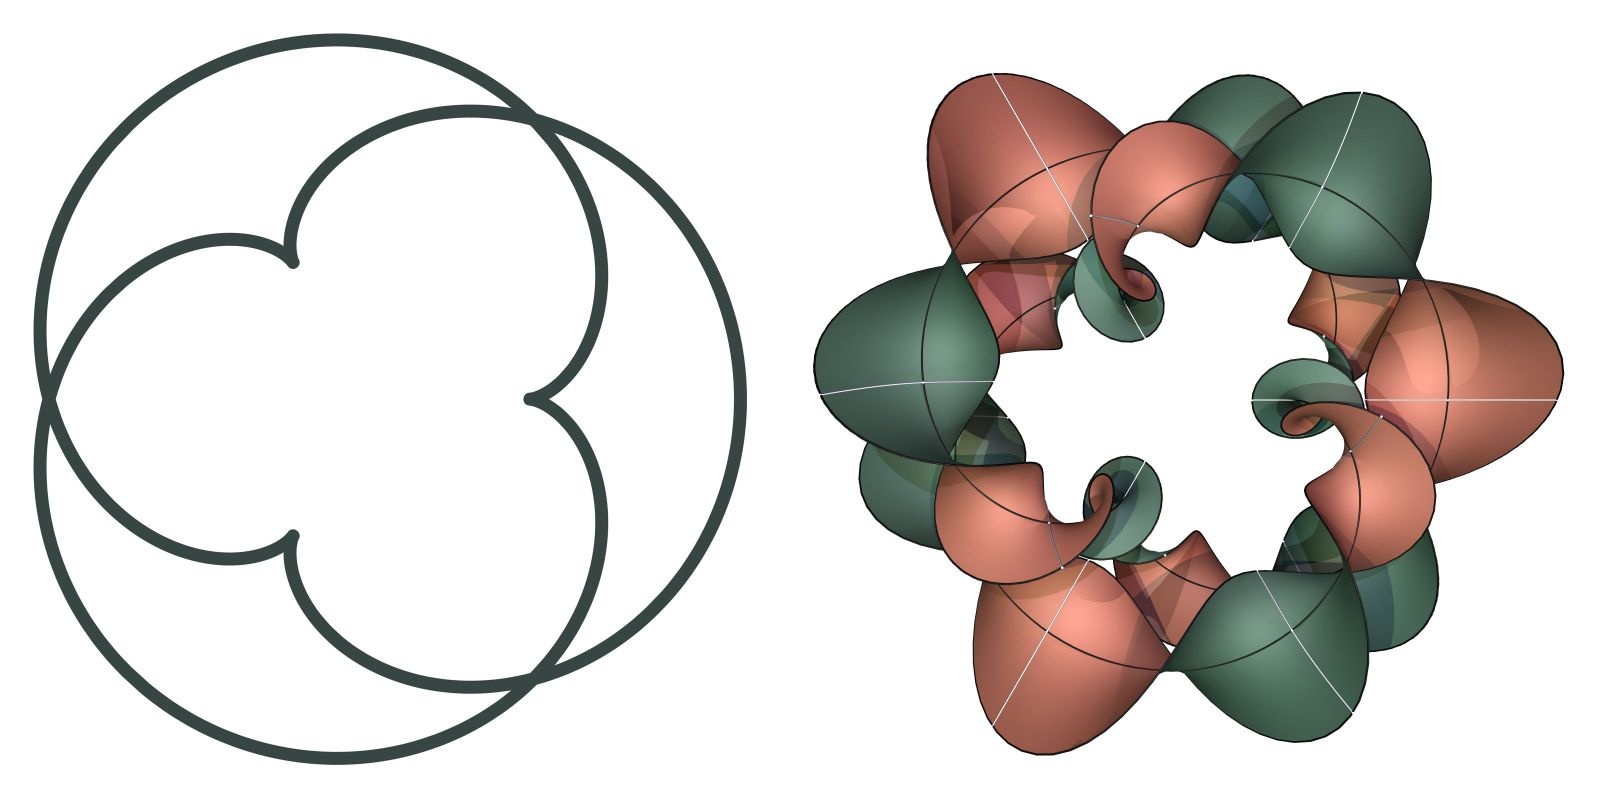 Cycloid3b